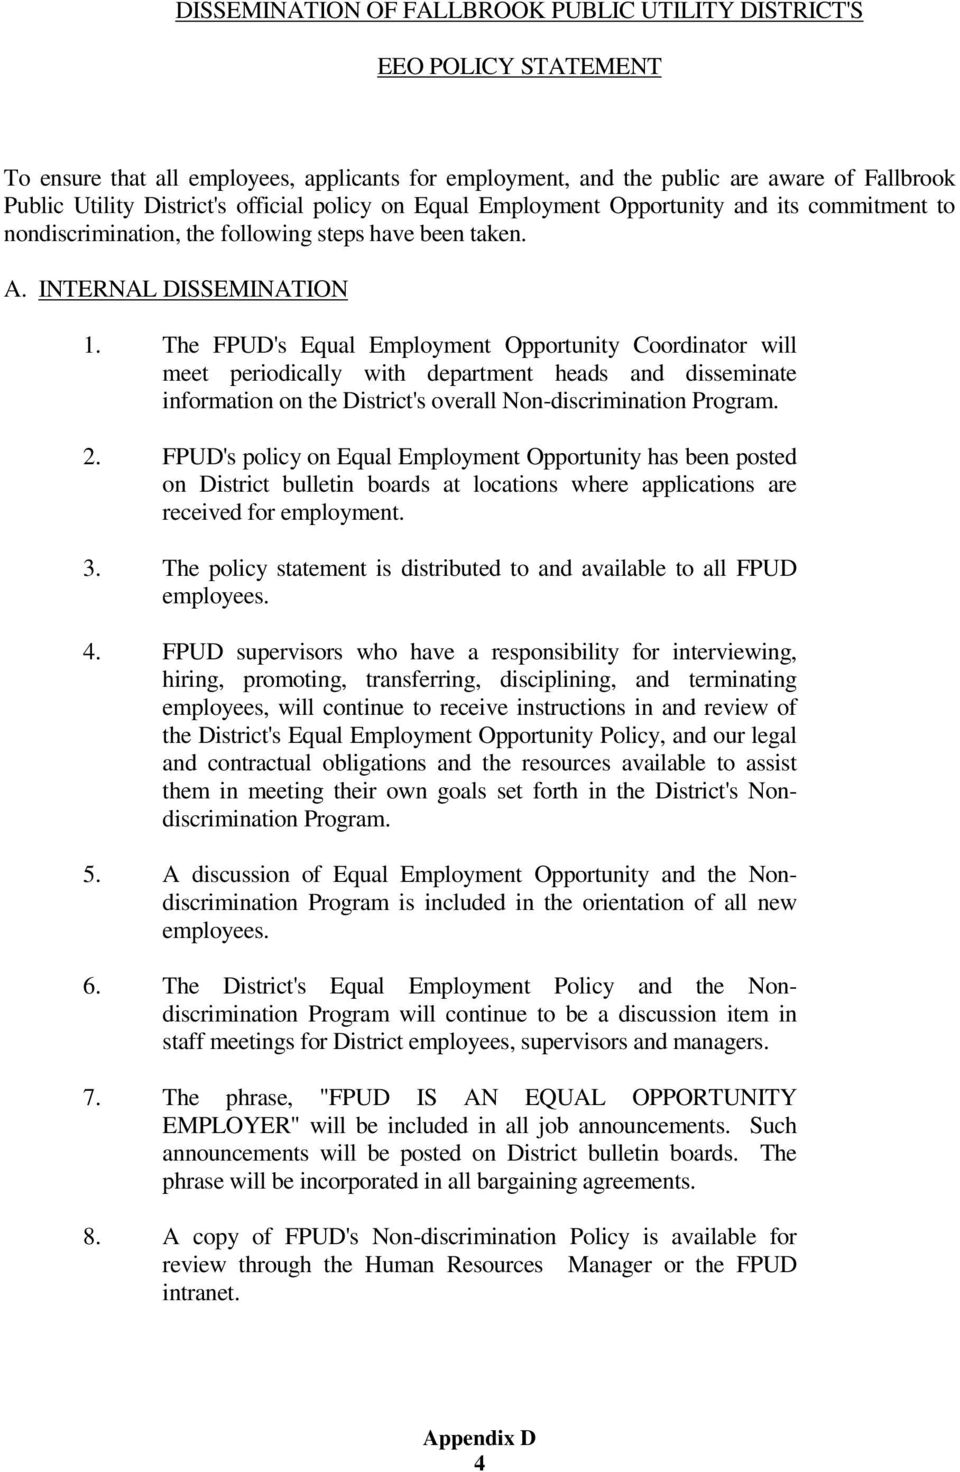 The FPUD's Equal Employment Opportunity Coordinator will meet periodically with department heads and disseminate information on the District's overall Non-discrimination Program. 2.